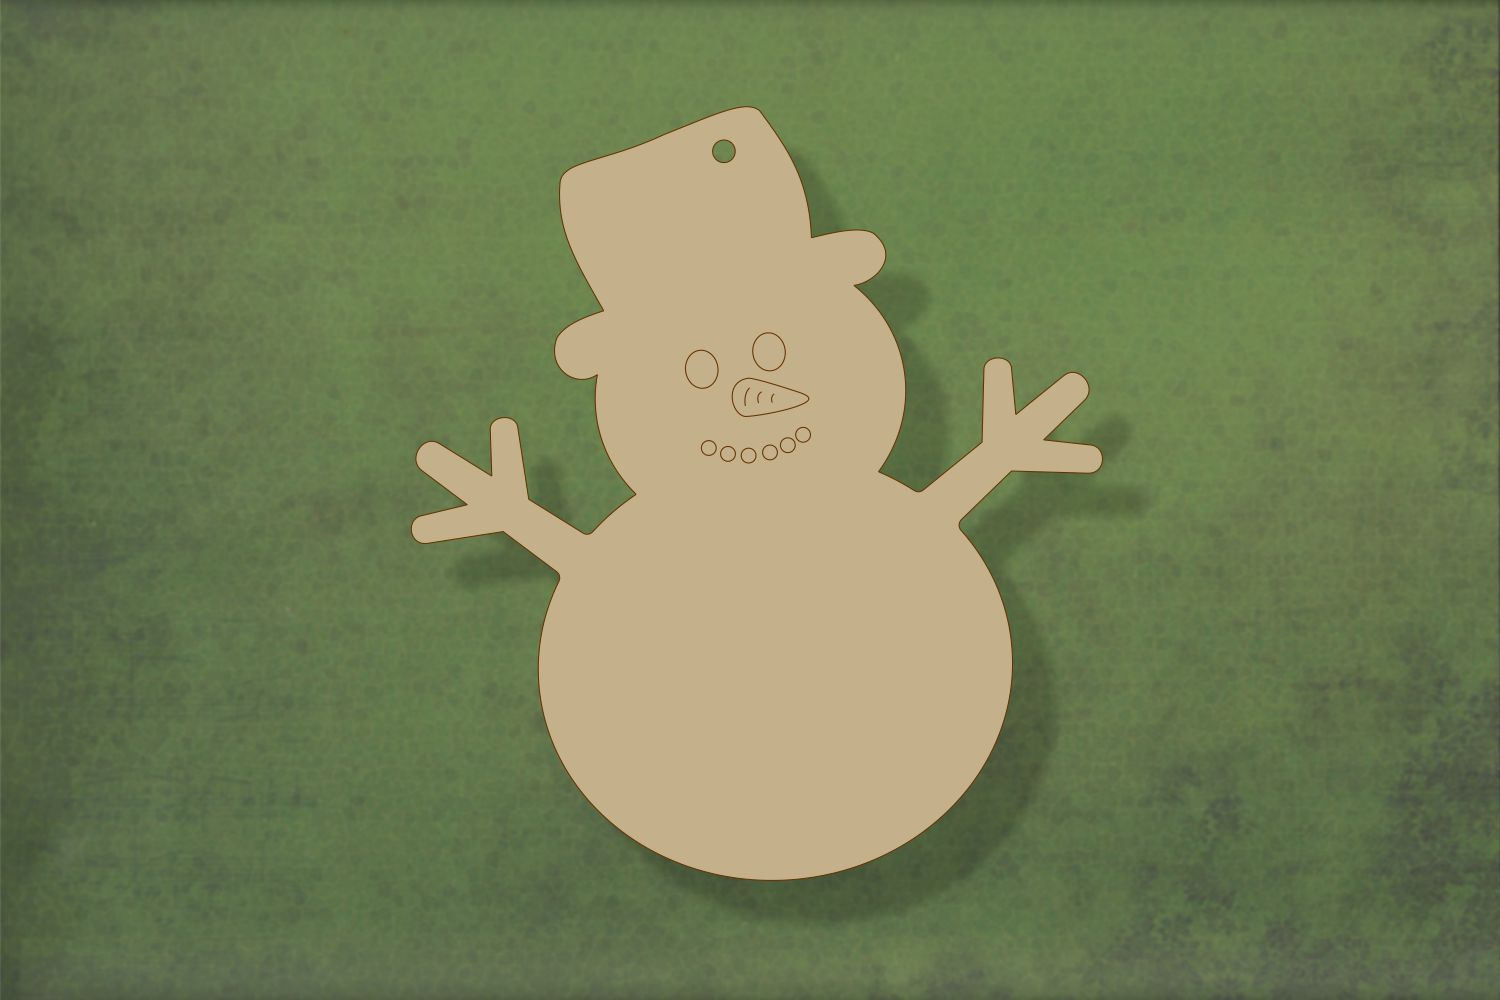 Laser cut, blank wooden Snowman 2 with etched face shape for craft